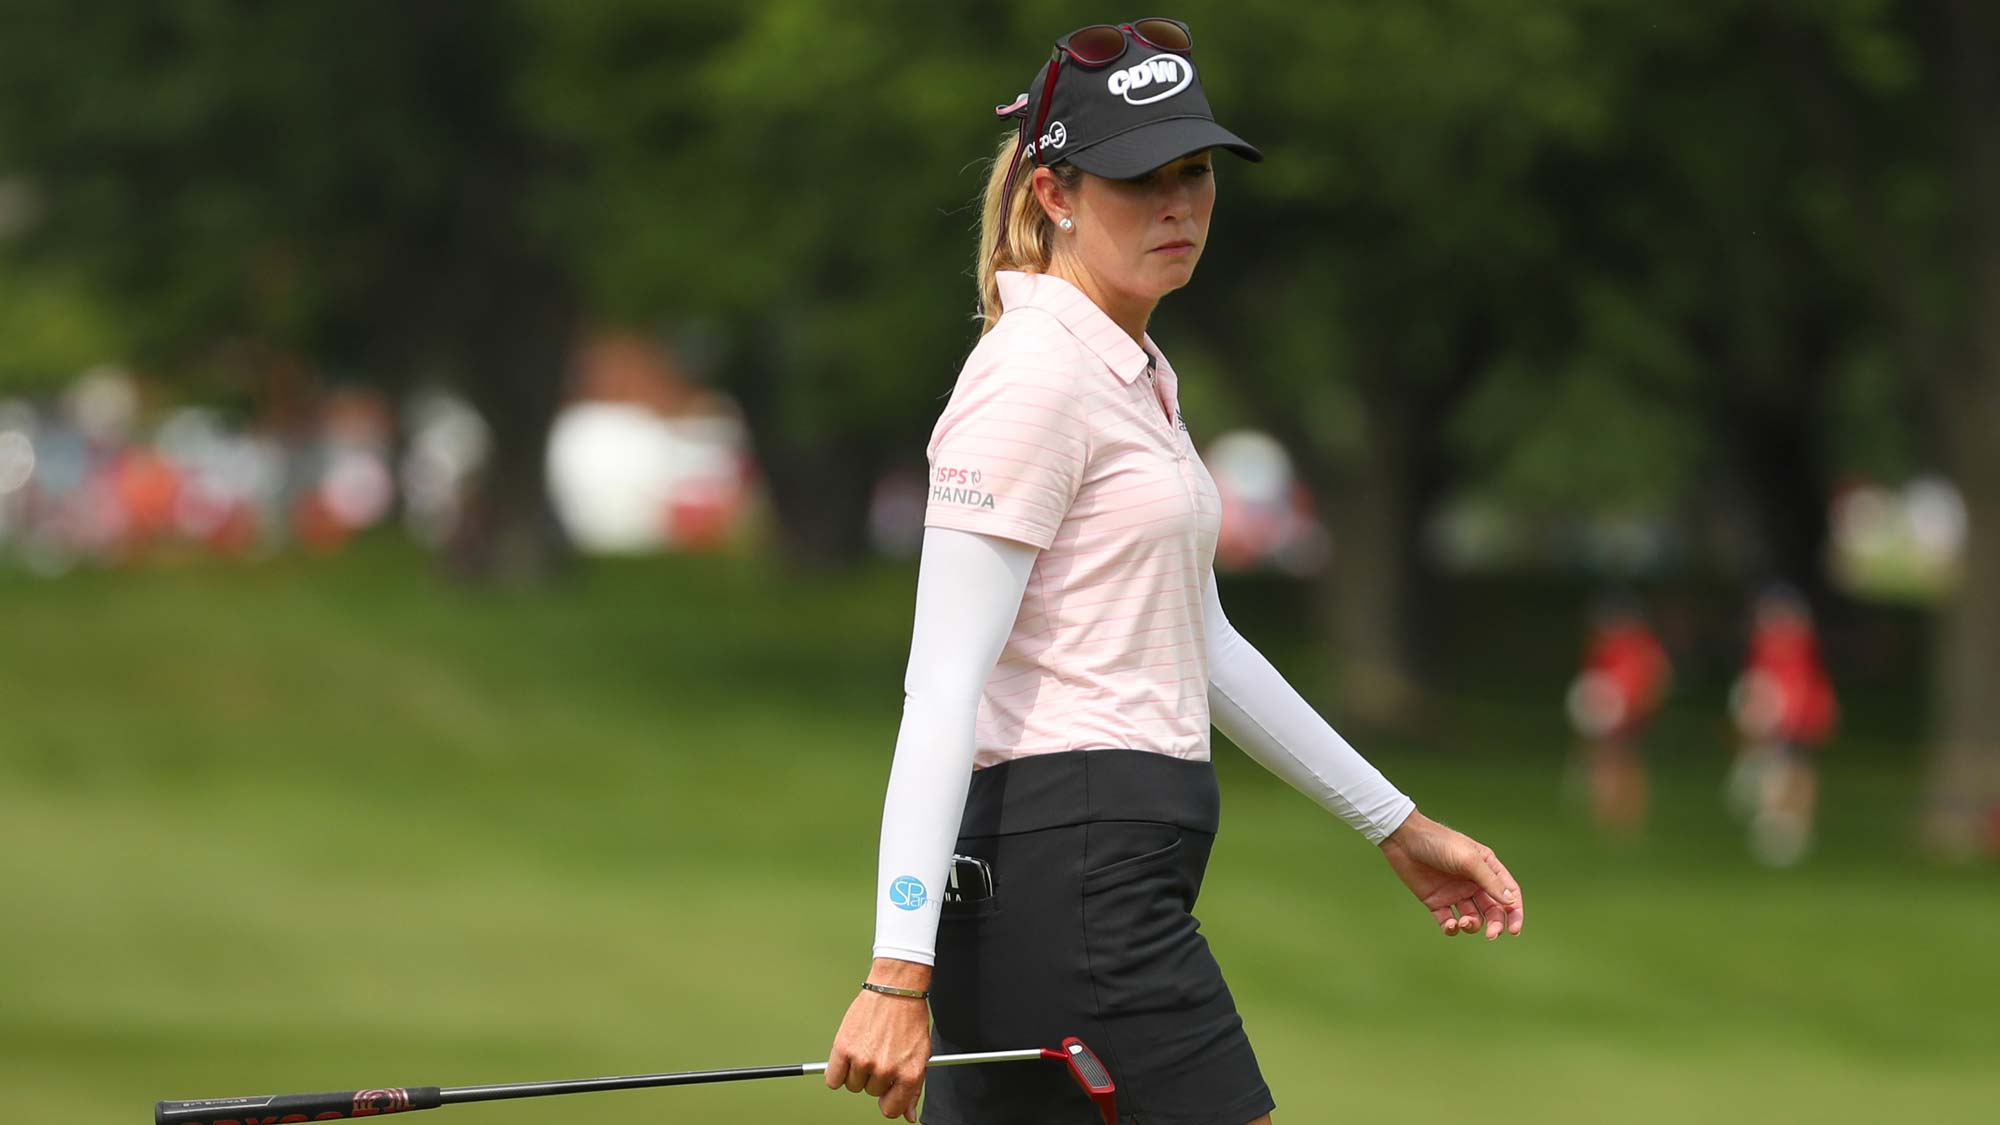 Paula Creamer reads a putt on the first hole during round two of the Dow Great Lakes Bay Invitational